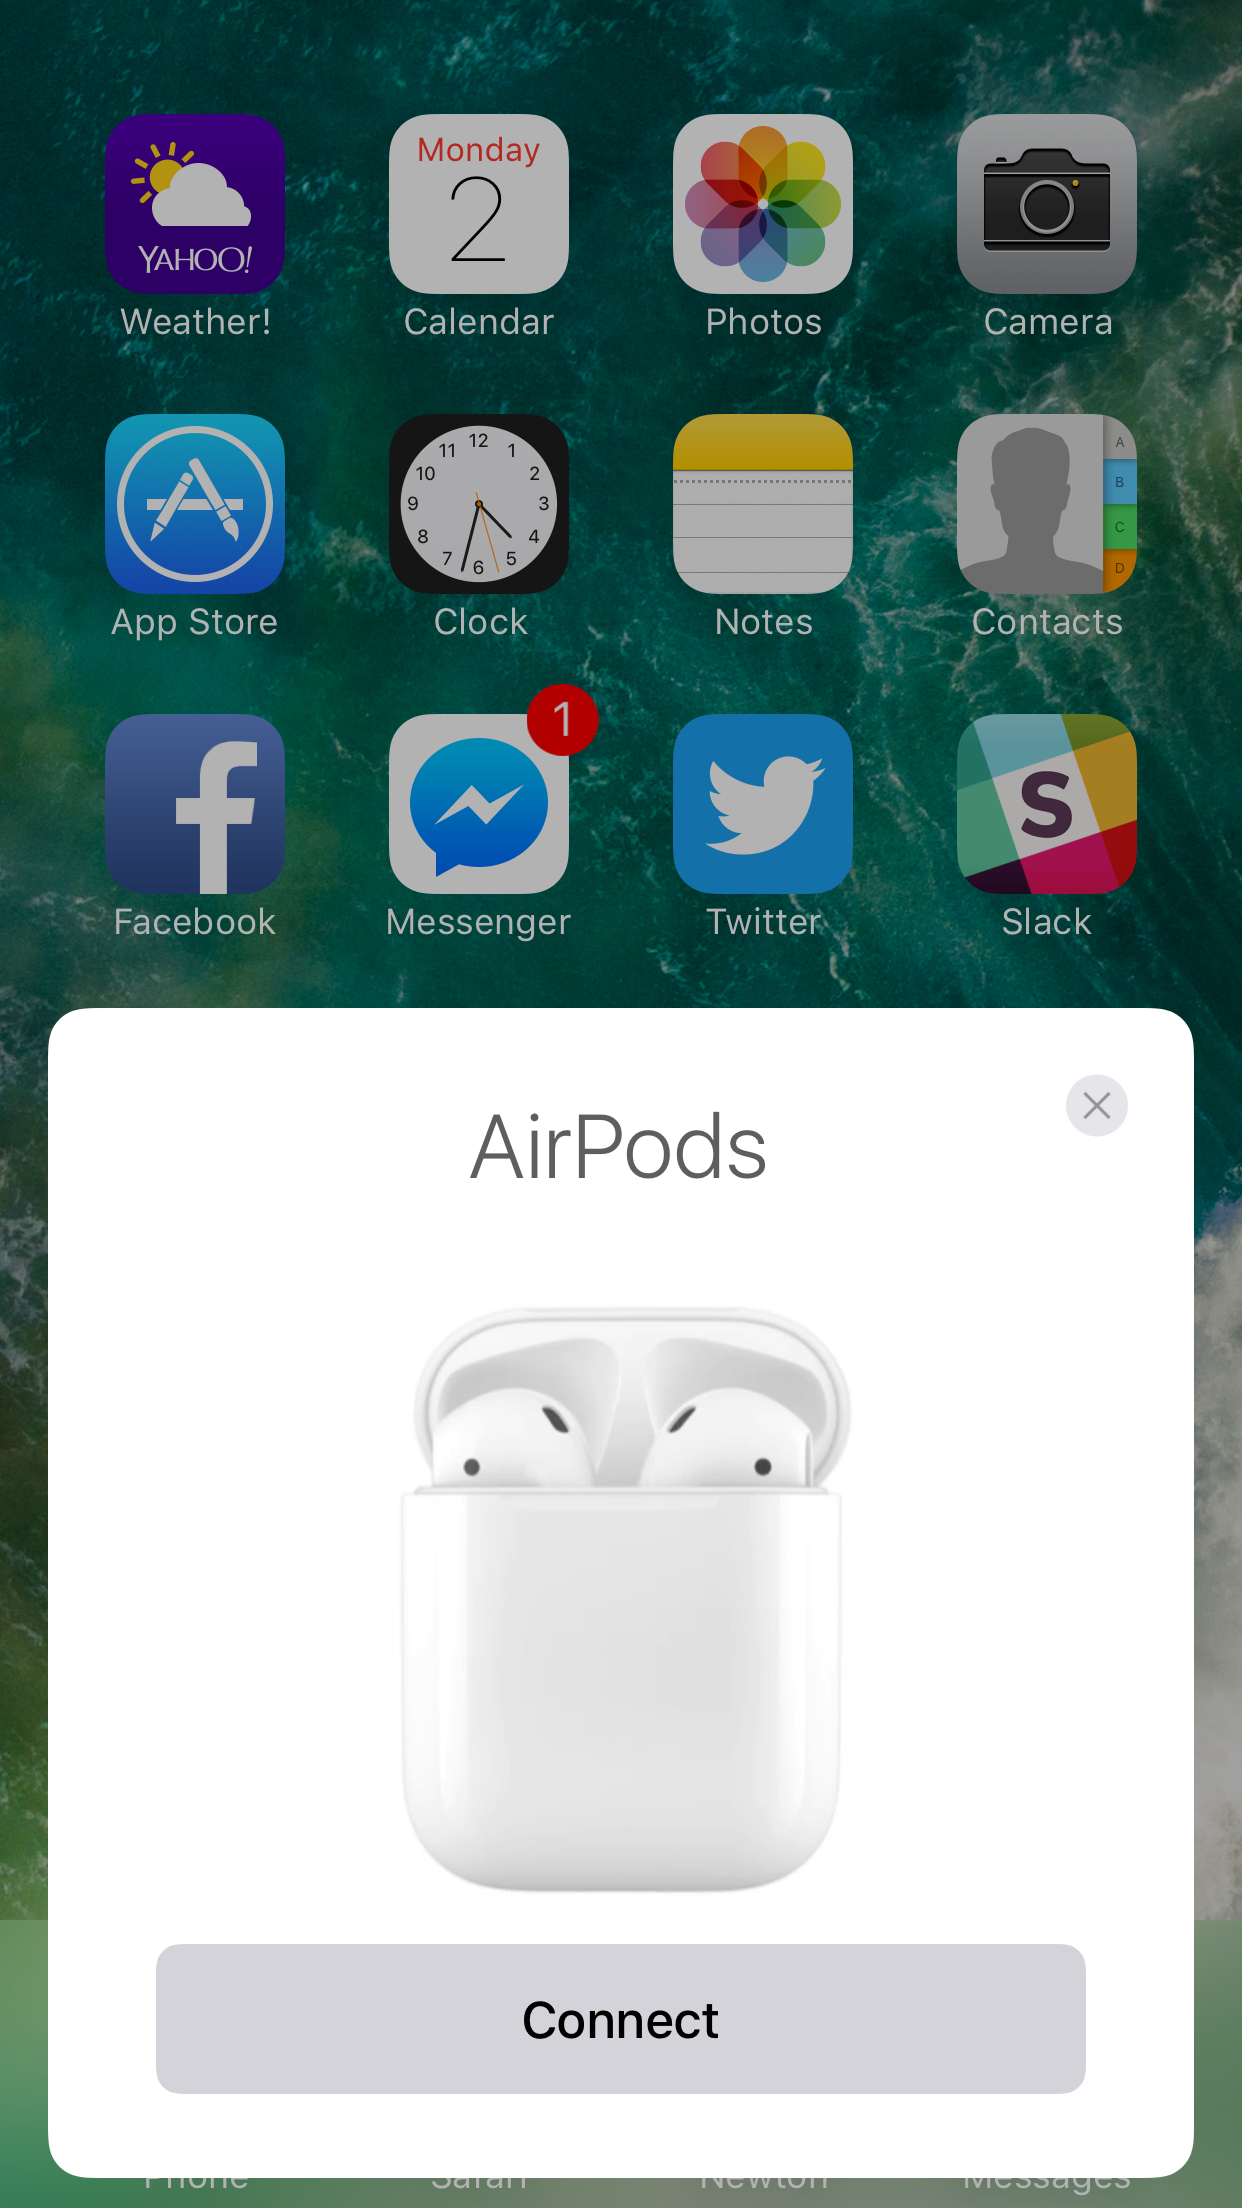 AirPods Connect Button